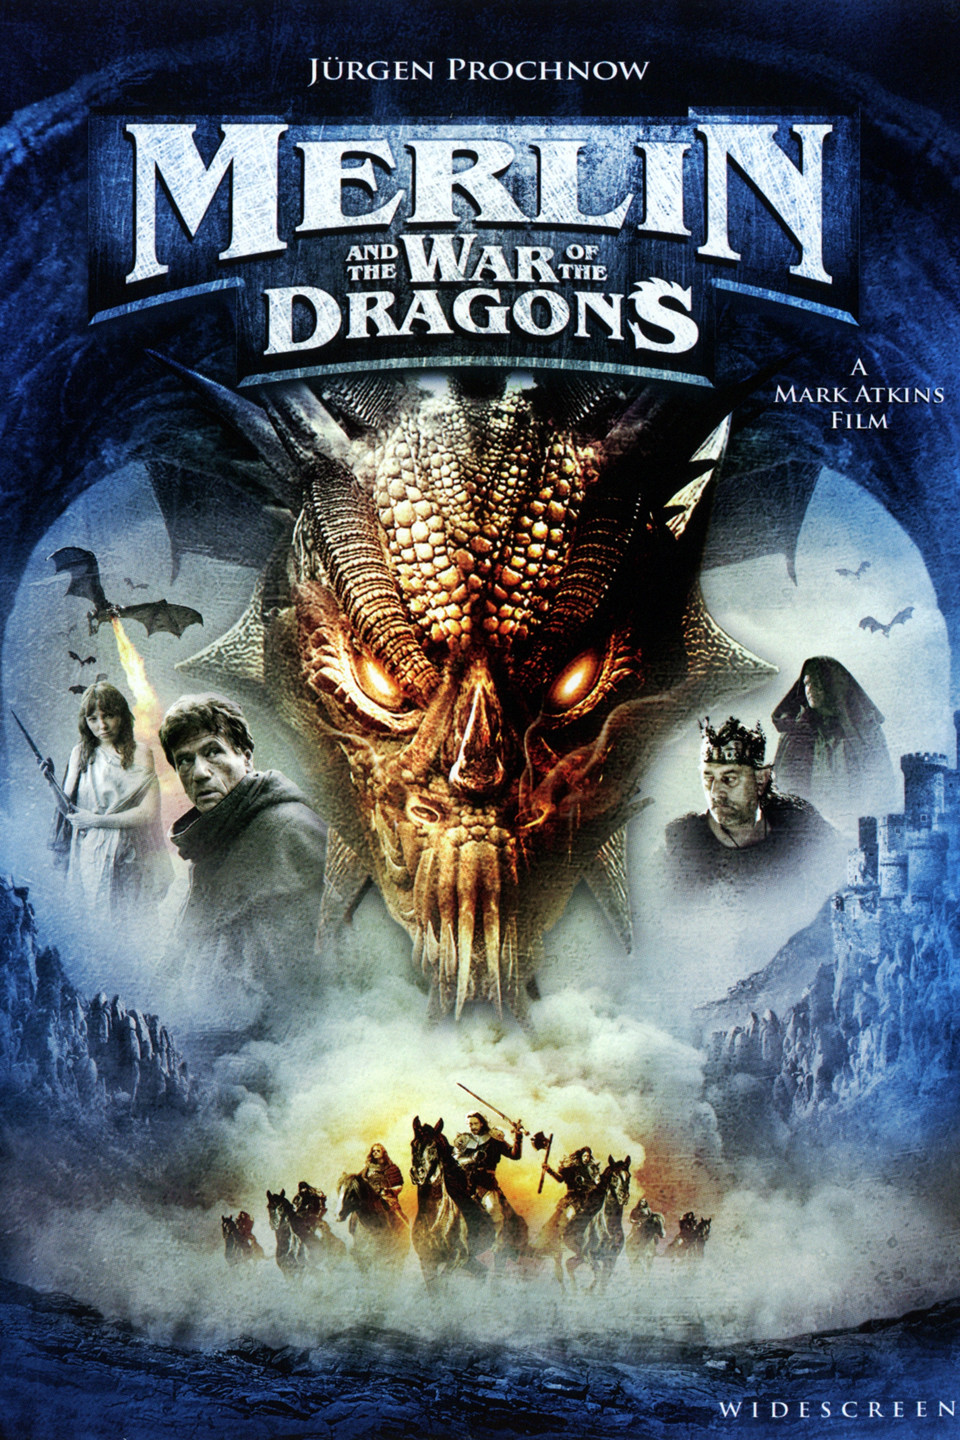 Merlin and the War of the Dragons-Merlin and the War of the Dragons